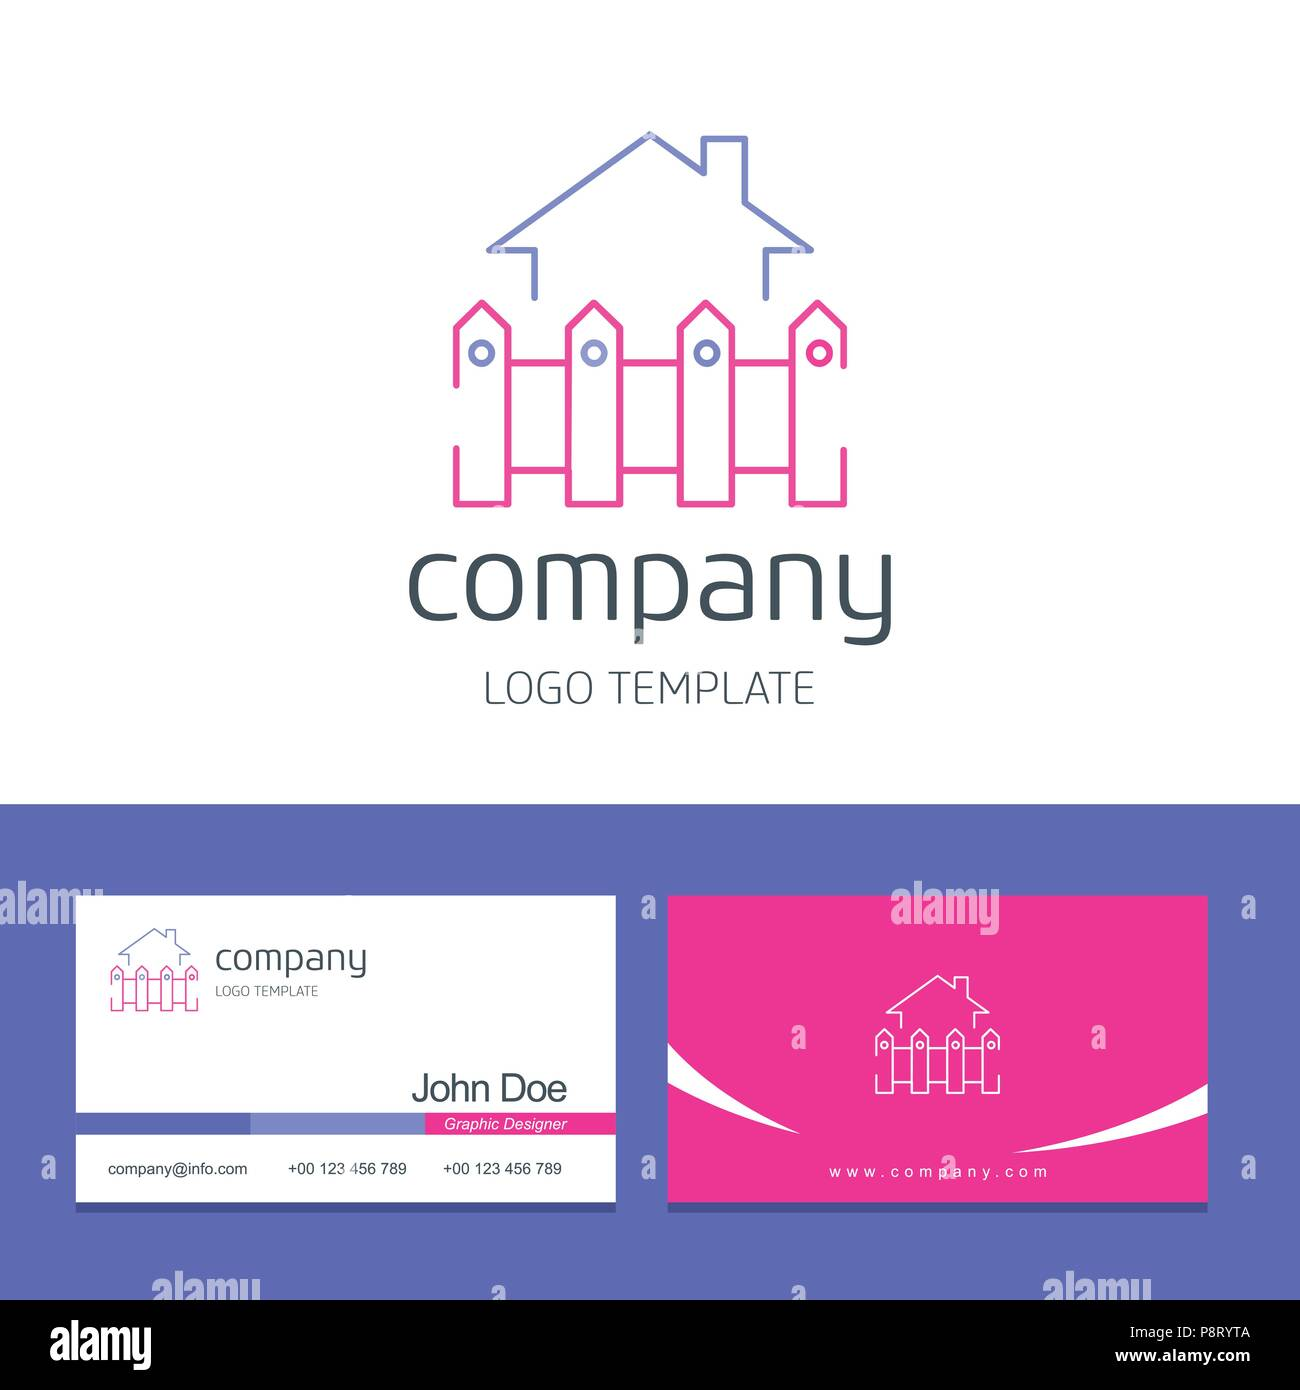 Business card design with house company logo vector. For web design and application interface, also useful for infographics. Vector illustration. - Stock Vector